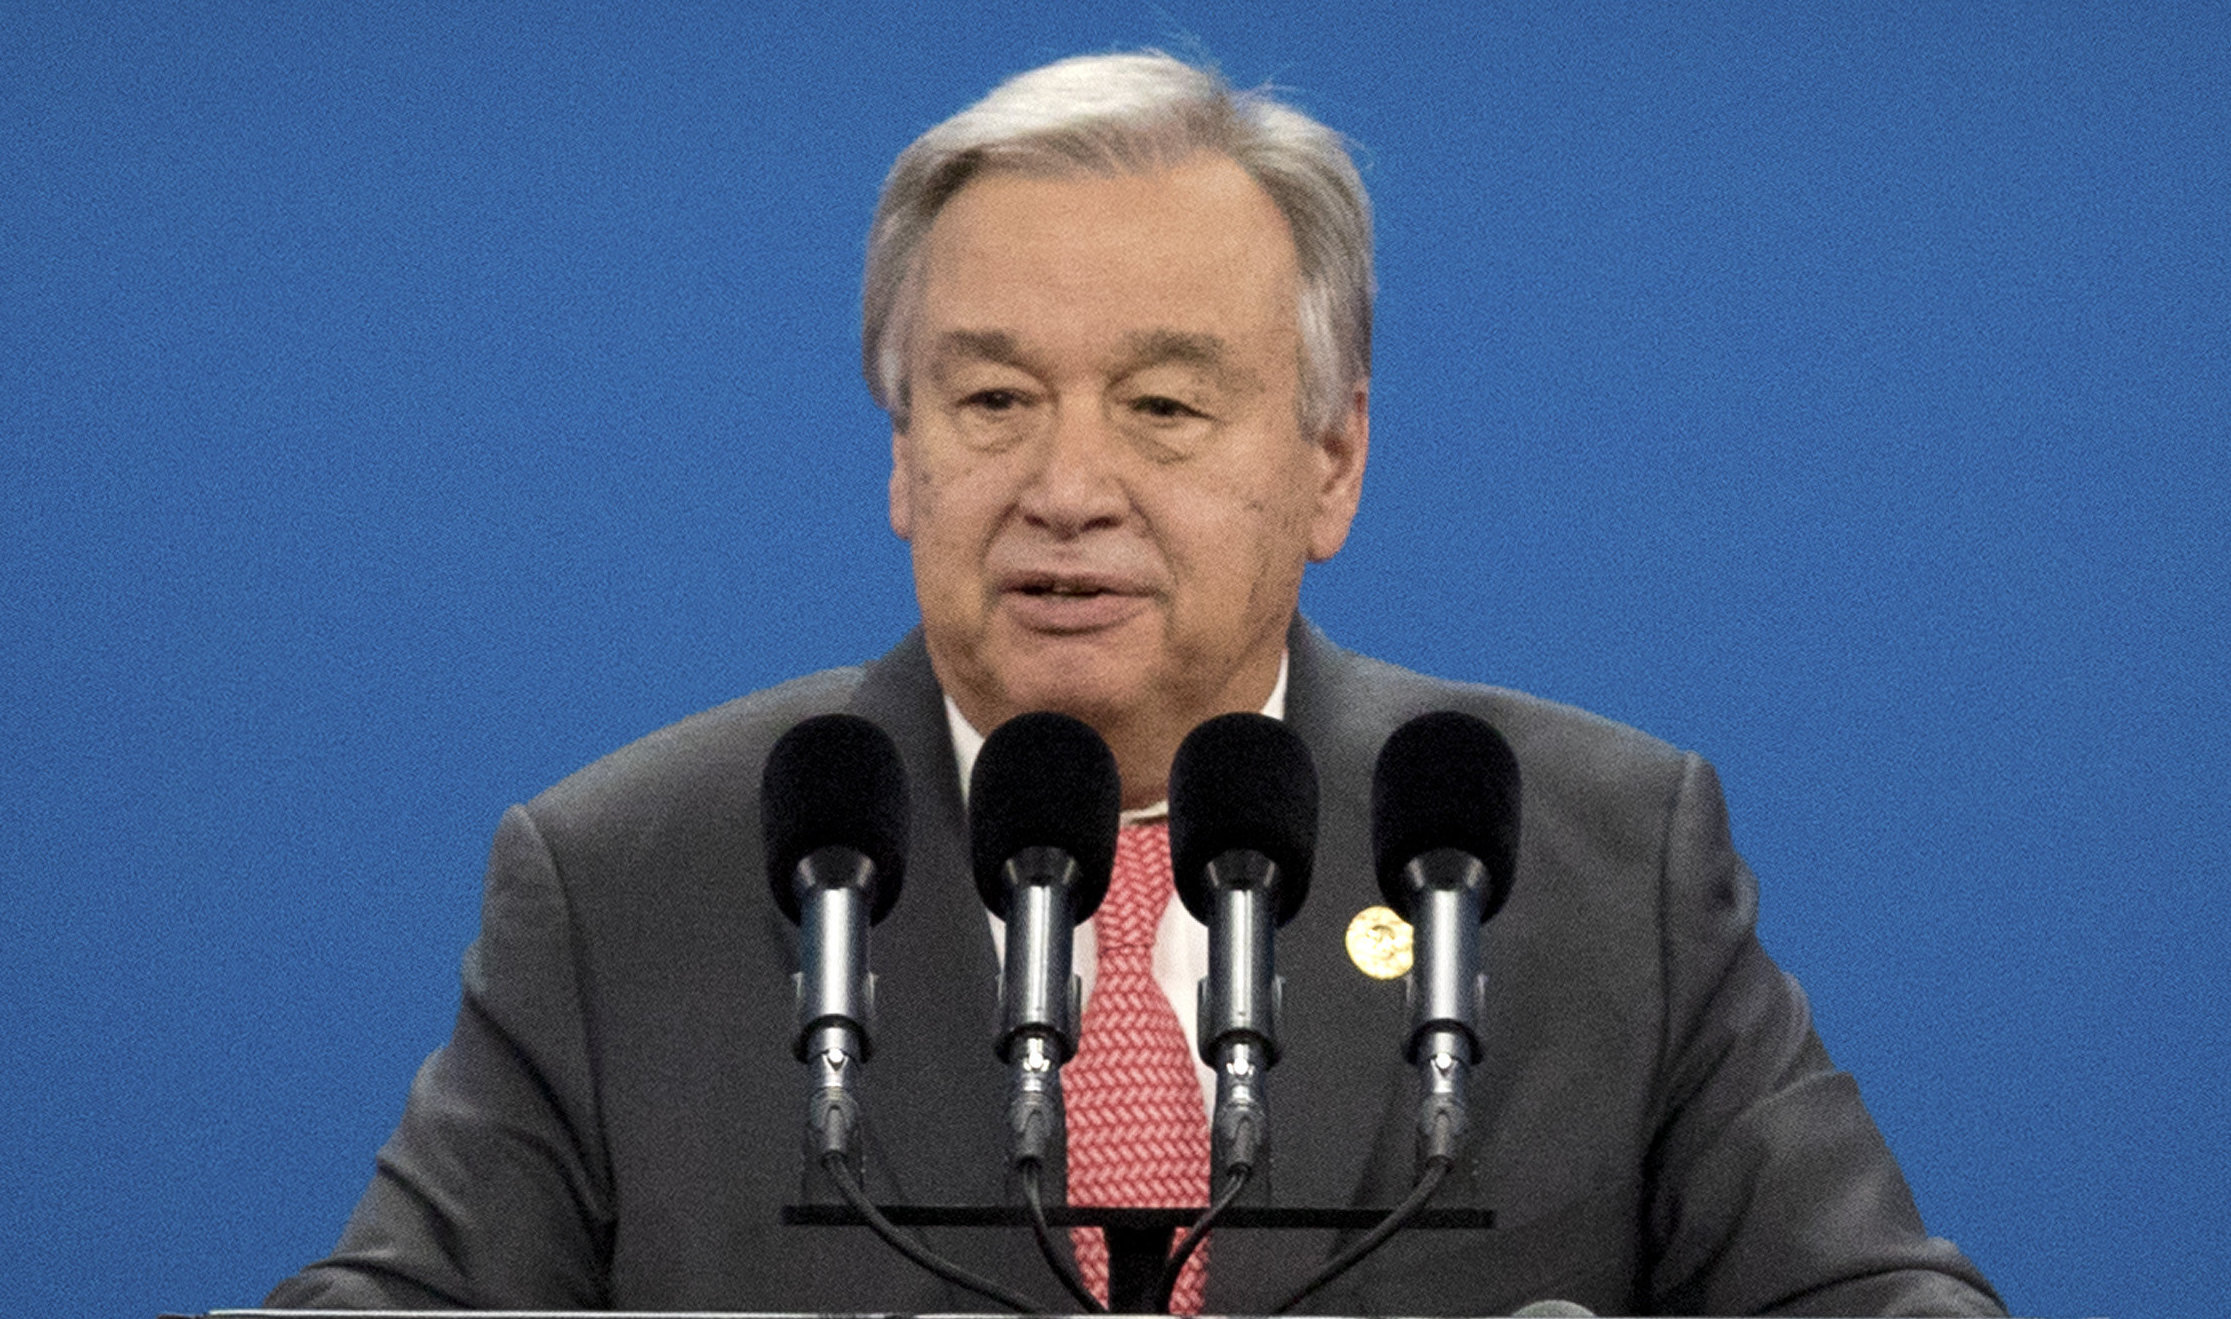 Antonio Guterres, UN secretary-general, wants a probe into the alleged chemical attack on Douma